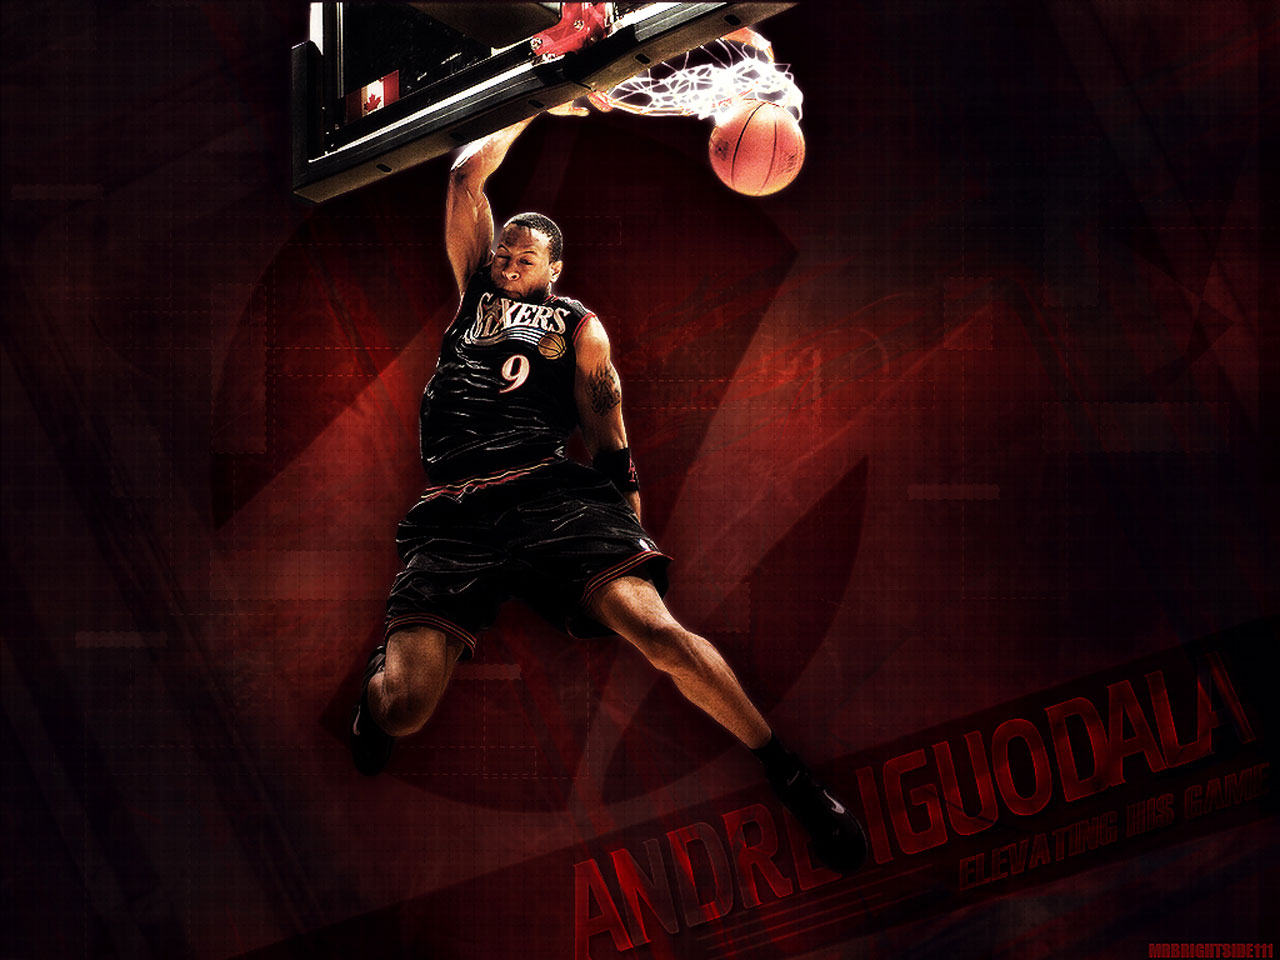 3bpblogspot D LjOXG39A8 Nba Wallpapers Slam Dunk